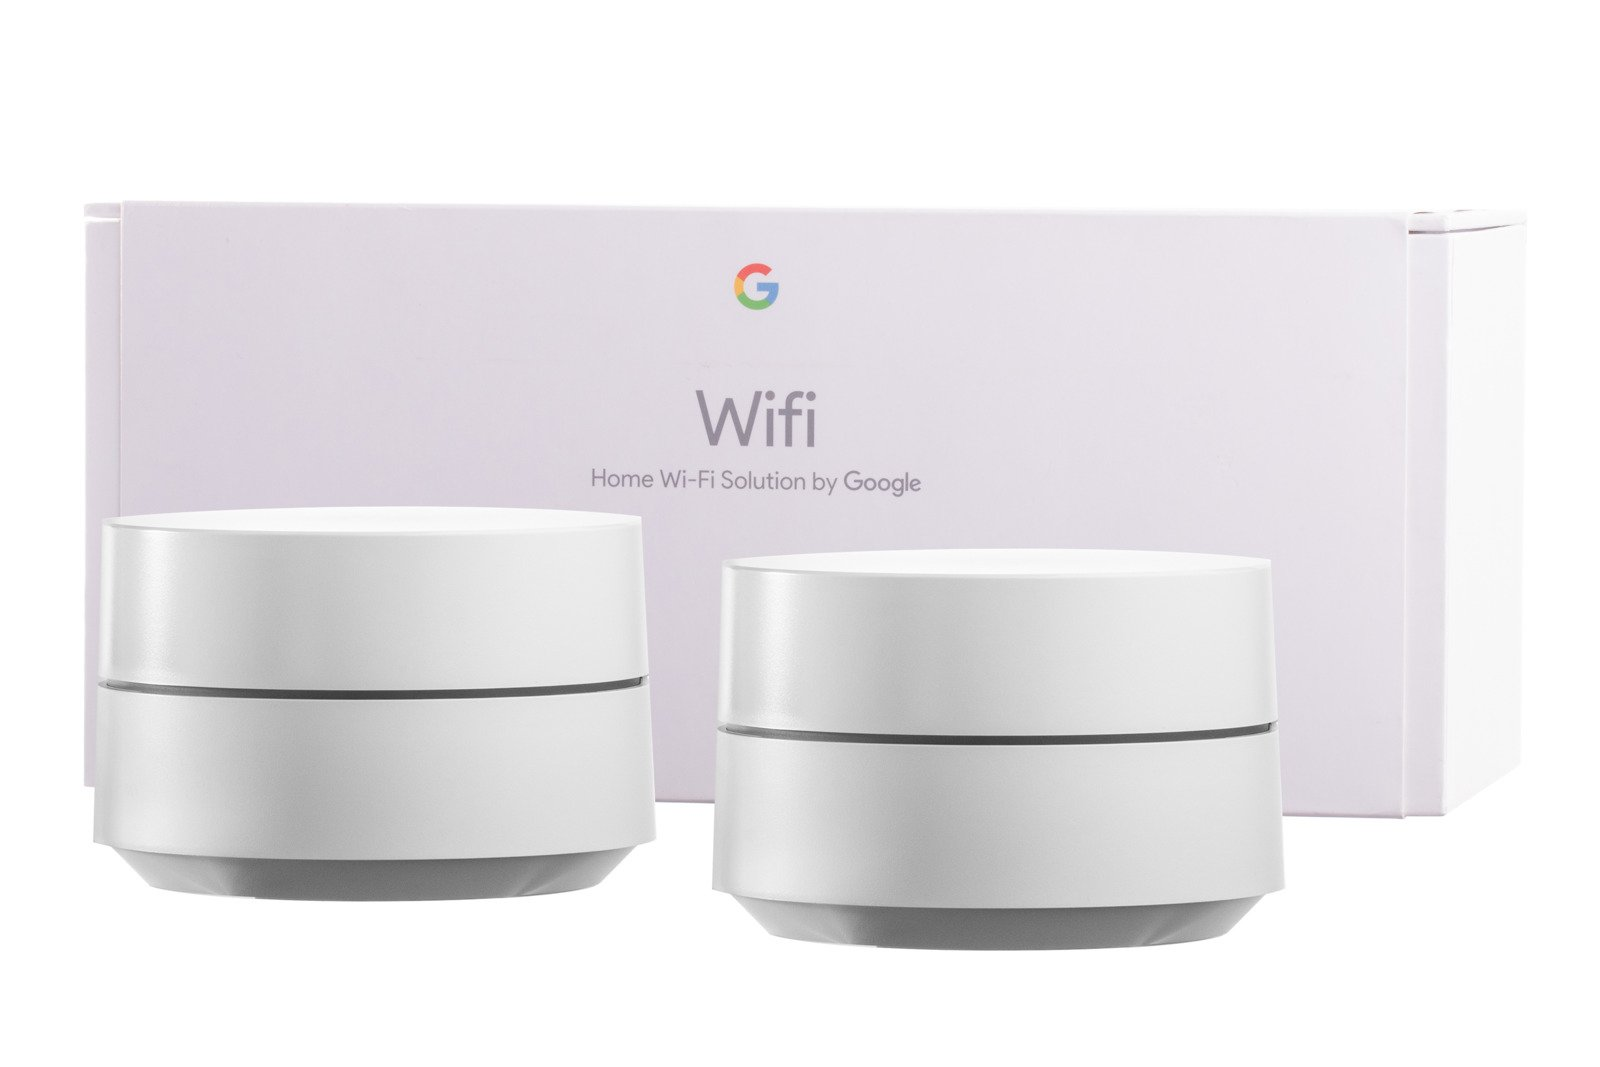 Google Wifi 2-Pack Home Wi-Fi System NLS-1304-25 Without charger